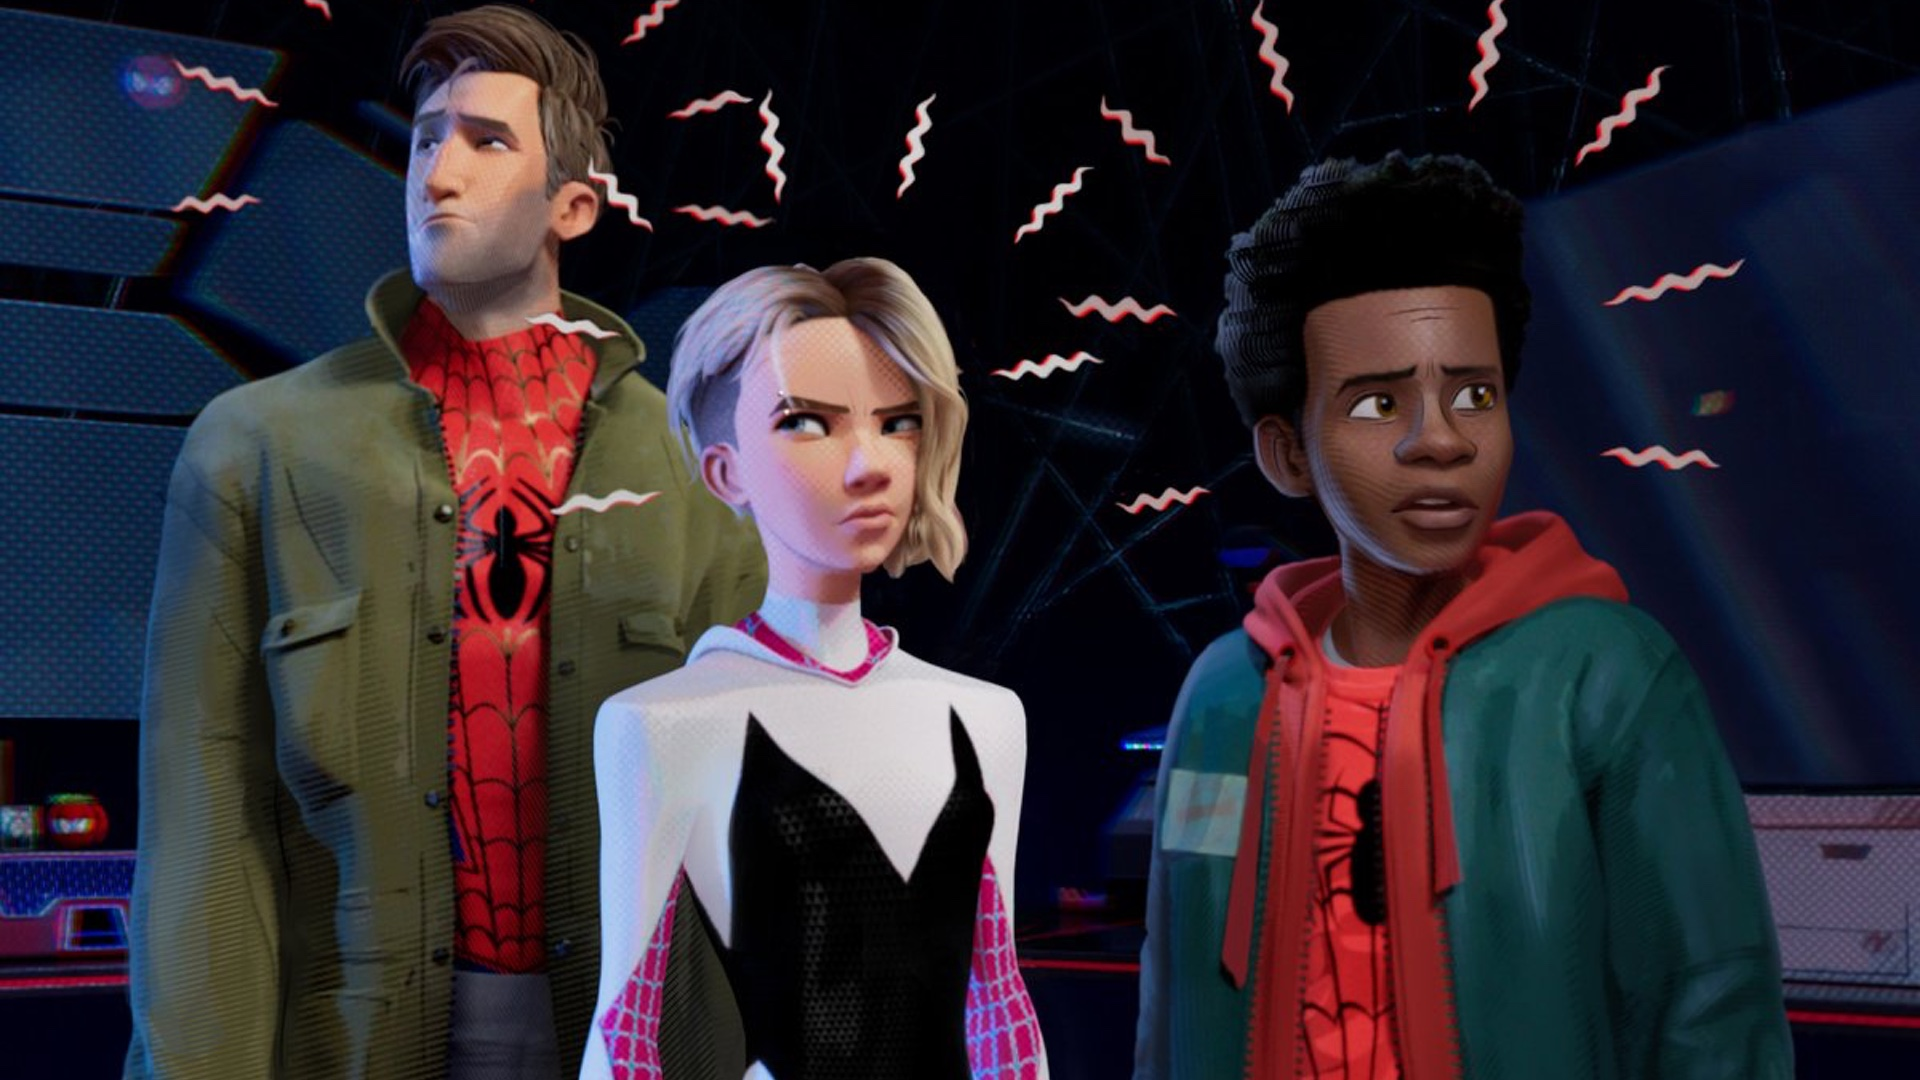 new-photo-from-spider-man-into-the-spider-verse-features-miles-peter-and-spider-man-social.jpg